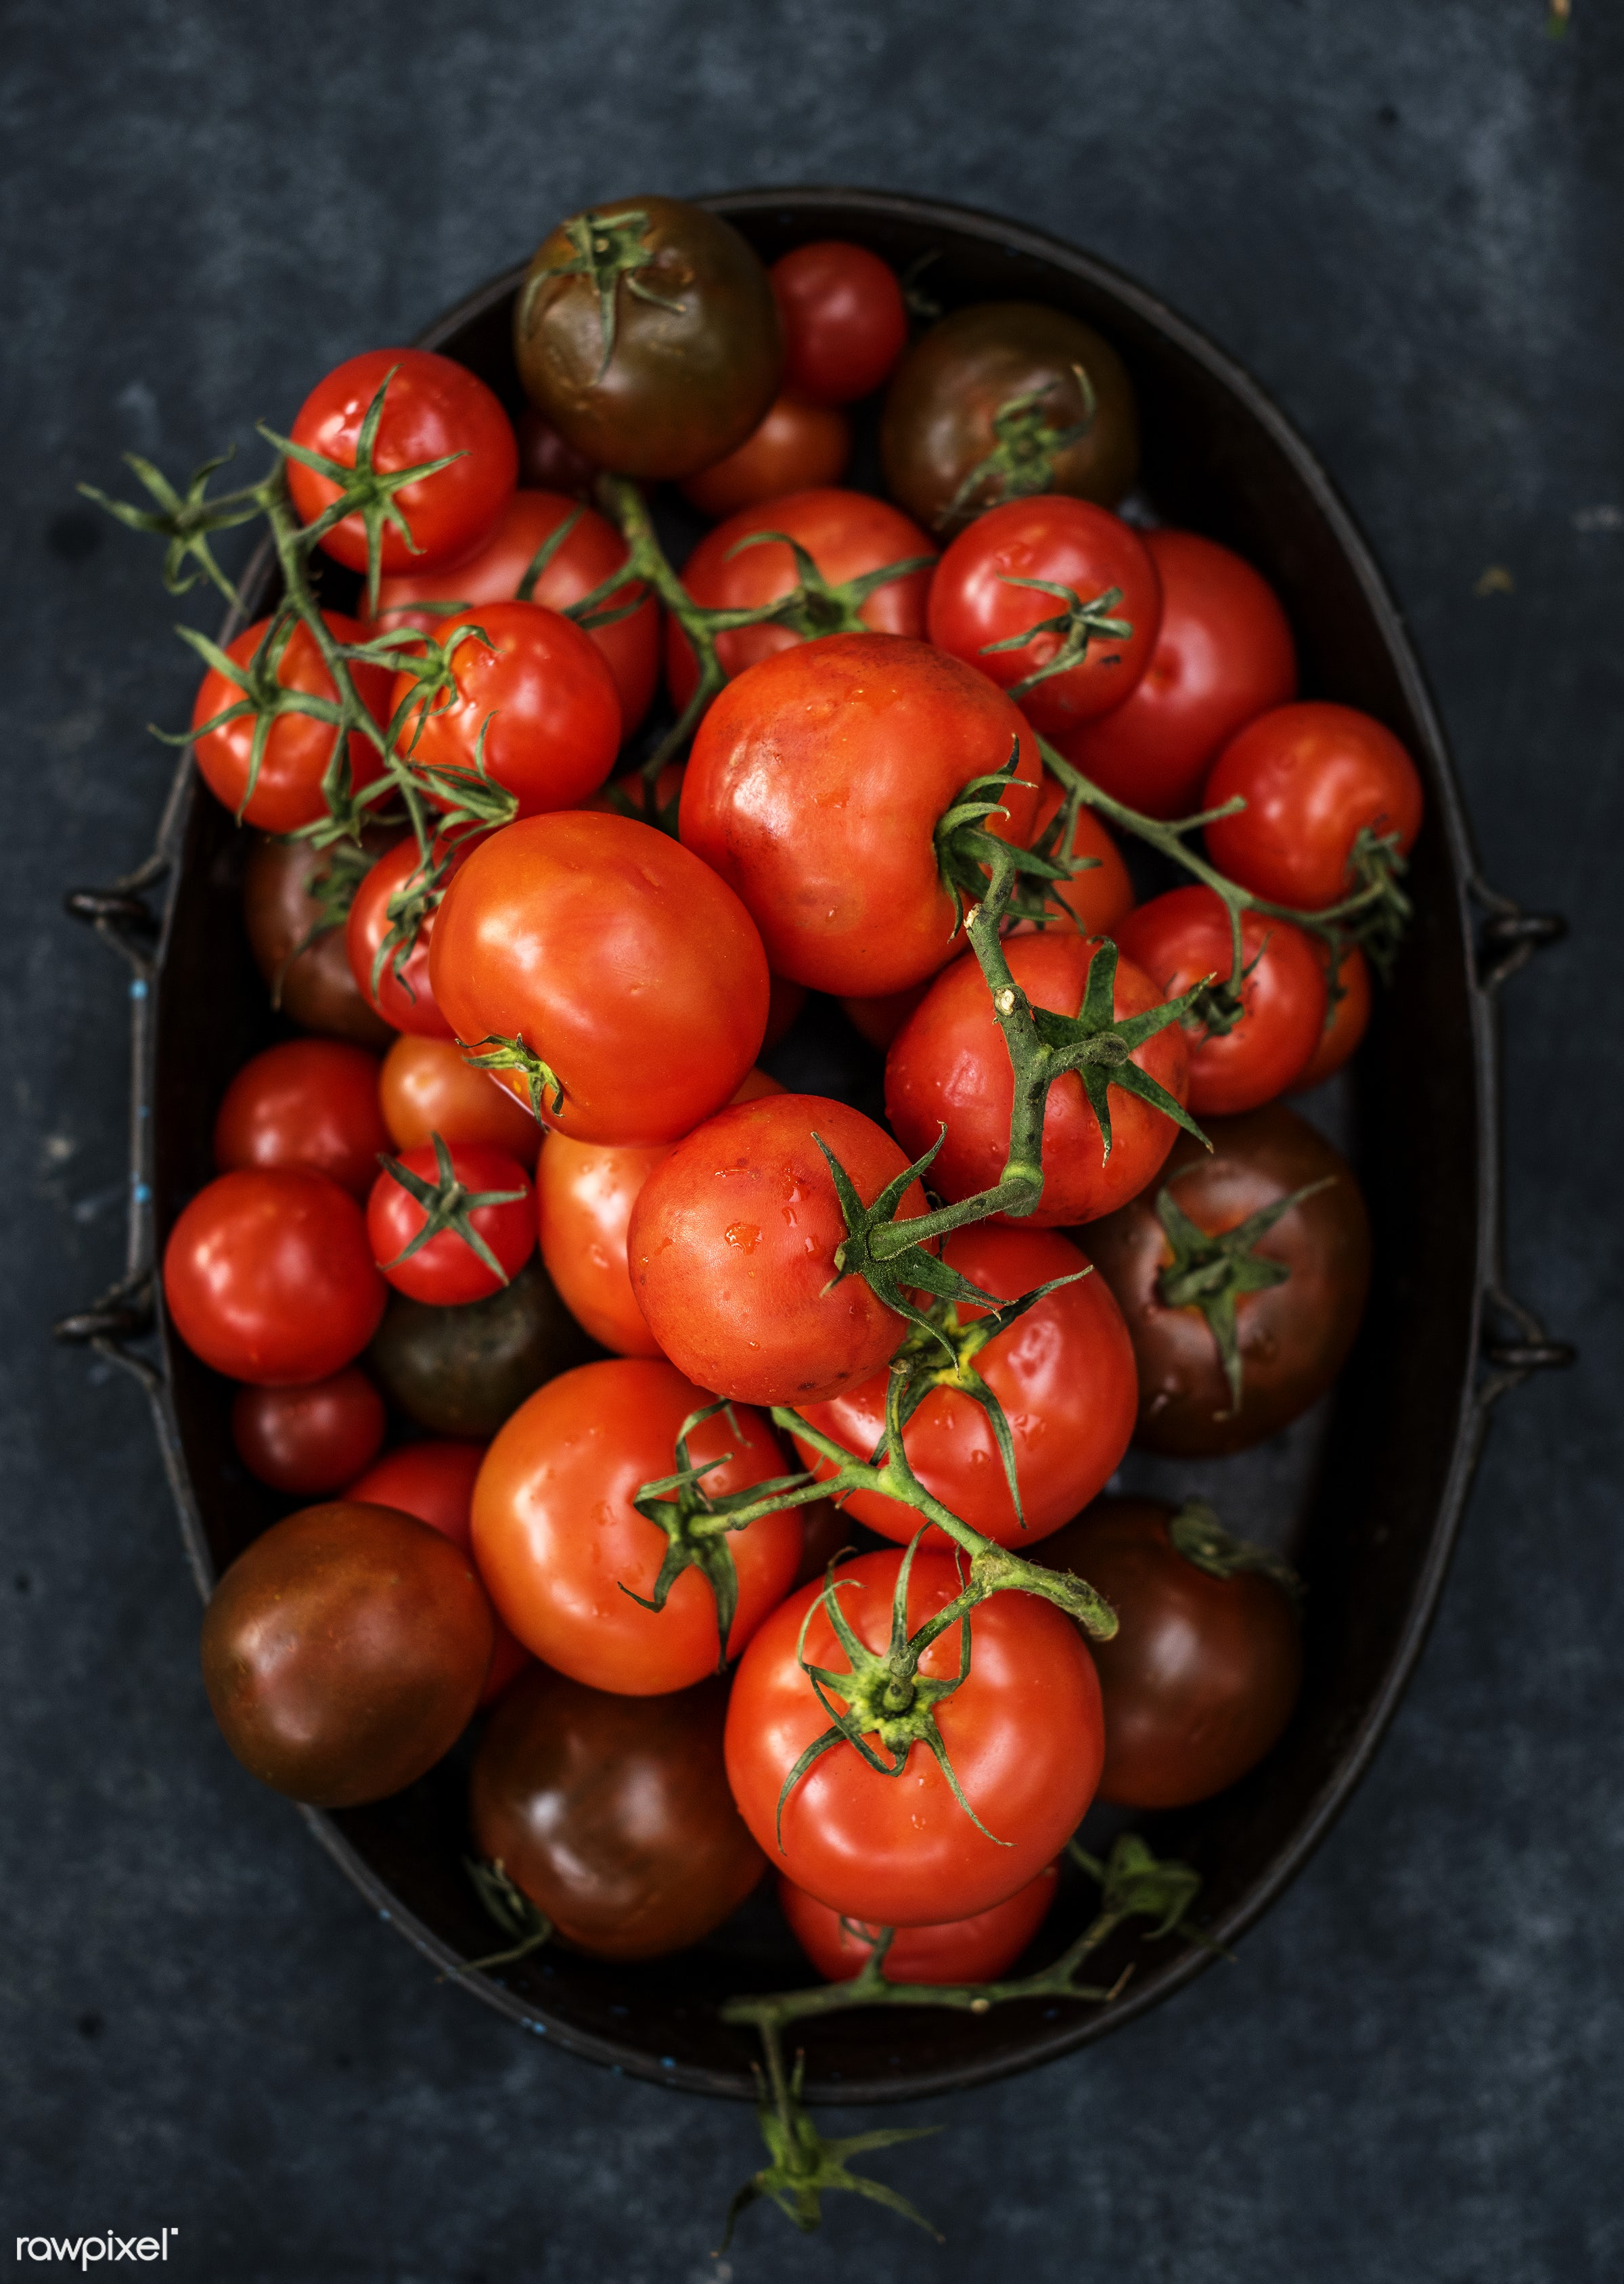 Tomatoes - raw, nobody, farm, real, nature, fresh, aerial view, products, closeup, agriculture, tomatoes, organic, food,...